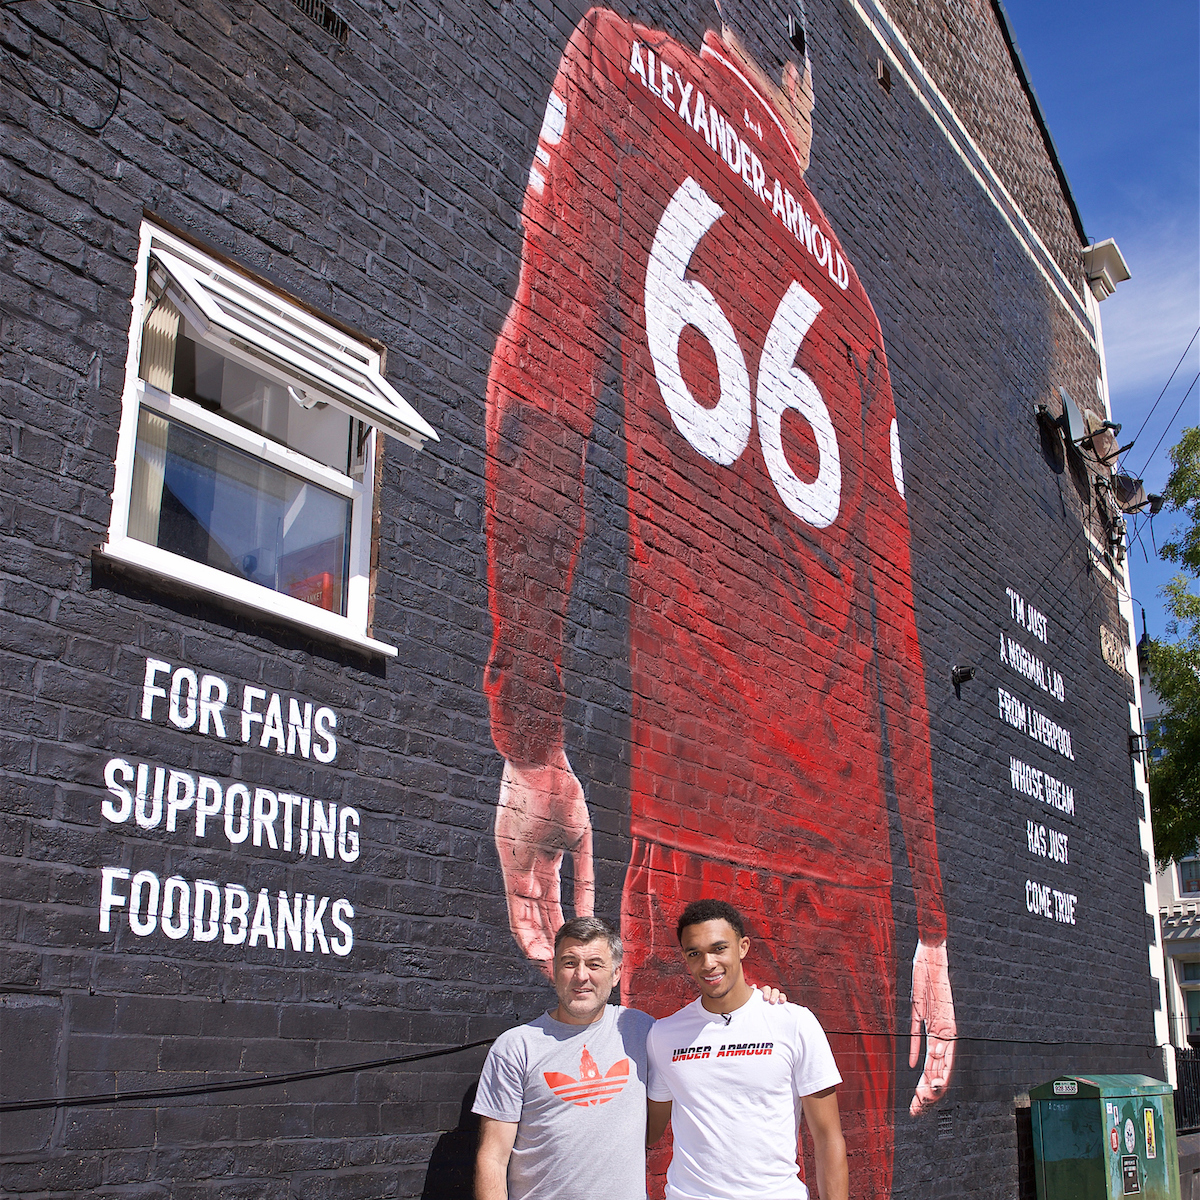 LIVERPOOL, ENGLAND - Thursday, August 8, 2019: Trent Alexander-Arnold poses for a photograph with Liverpool Foodbanks at the official opening of a mural of Liverpool's Trent Alexander-Arnold on the side of a building in Sybil Road, Anfield. The mural was commissioned by The Anfield Wrap and painted by local artist Akse P19. (Pic by David Rawcliffe/Propaganda)